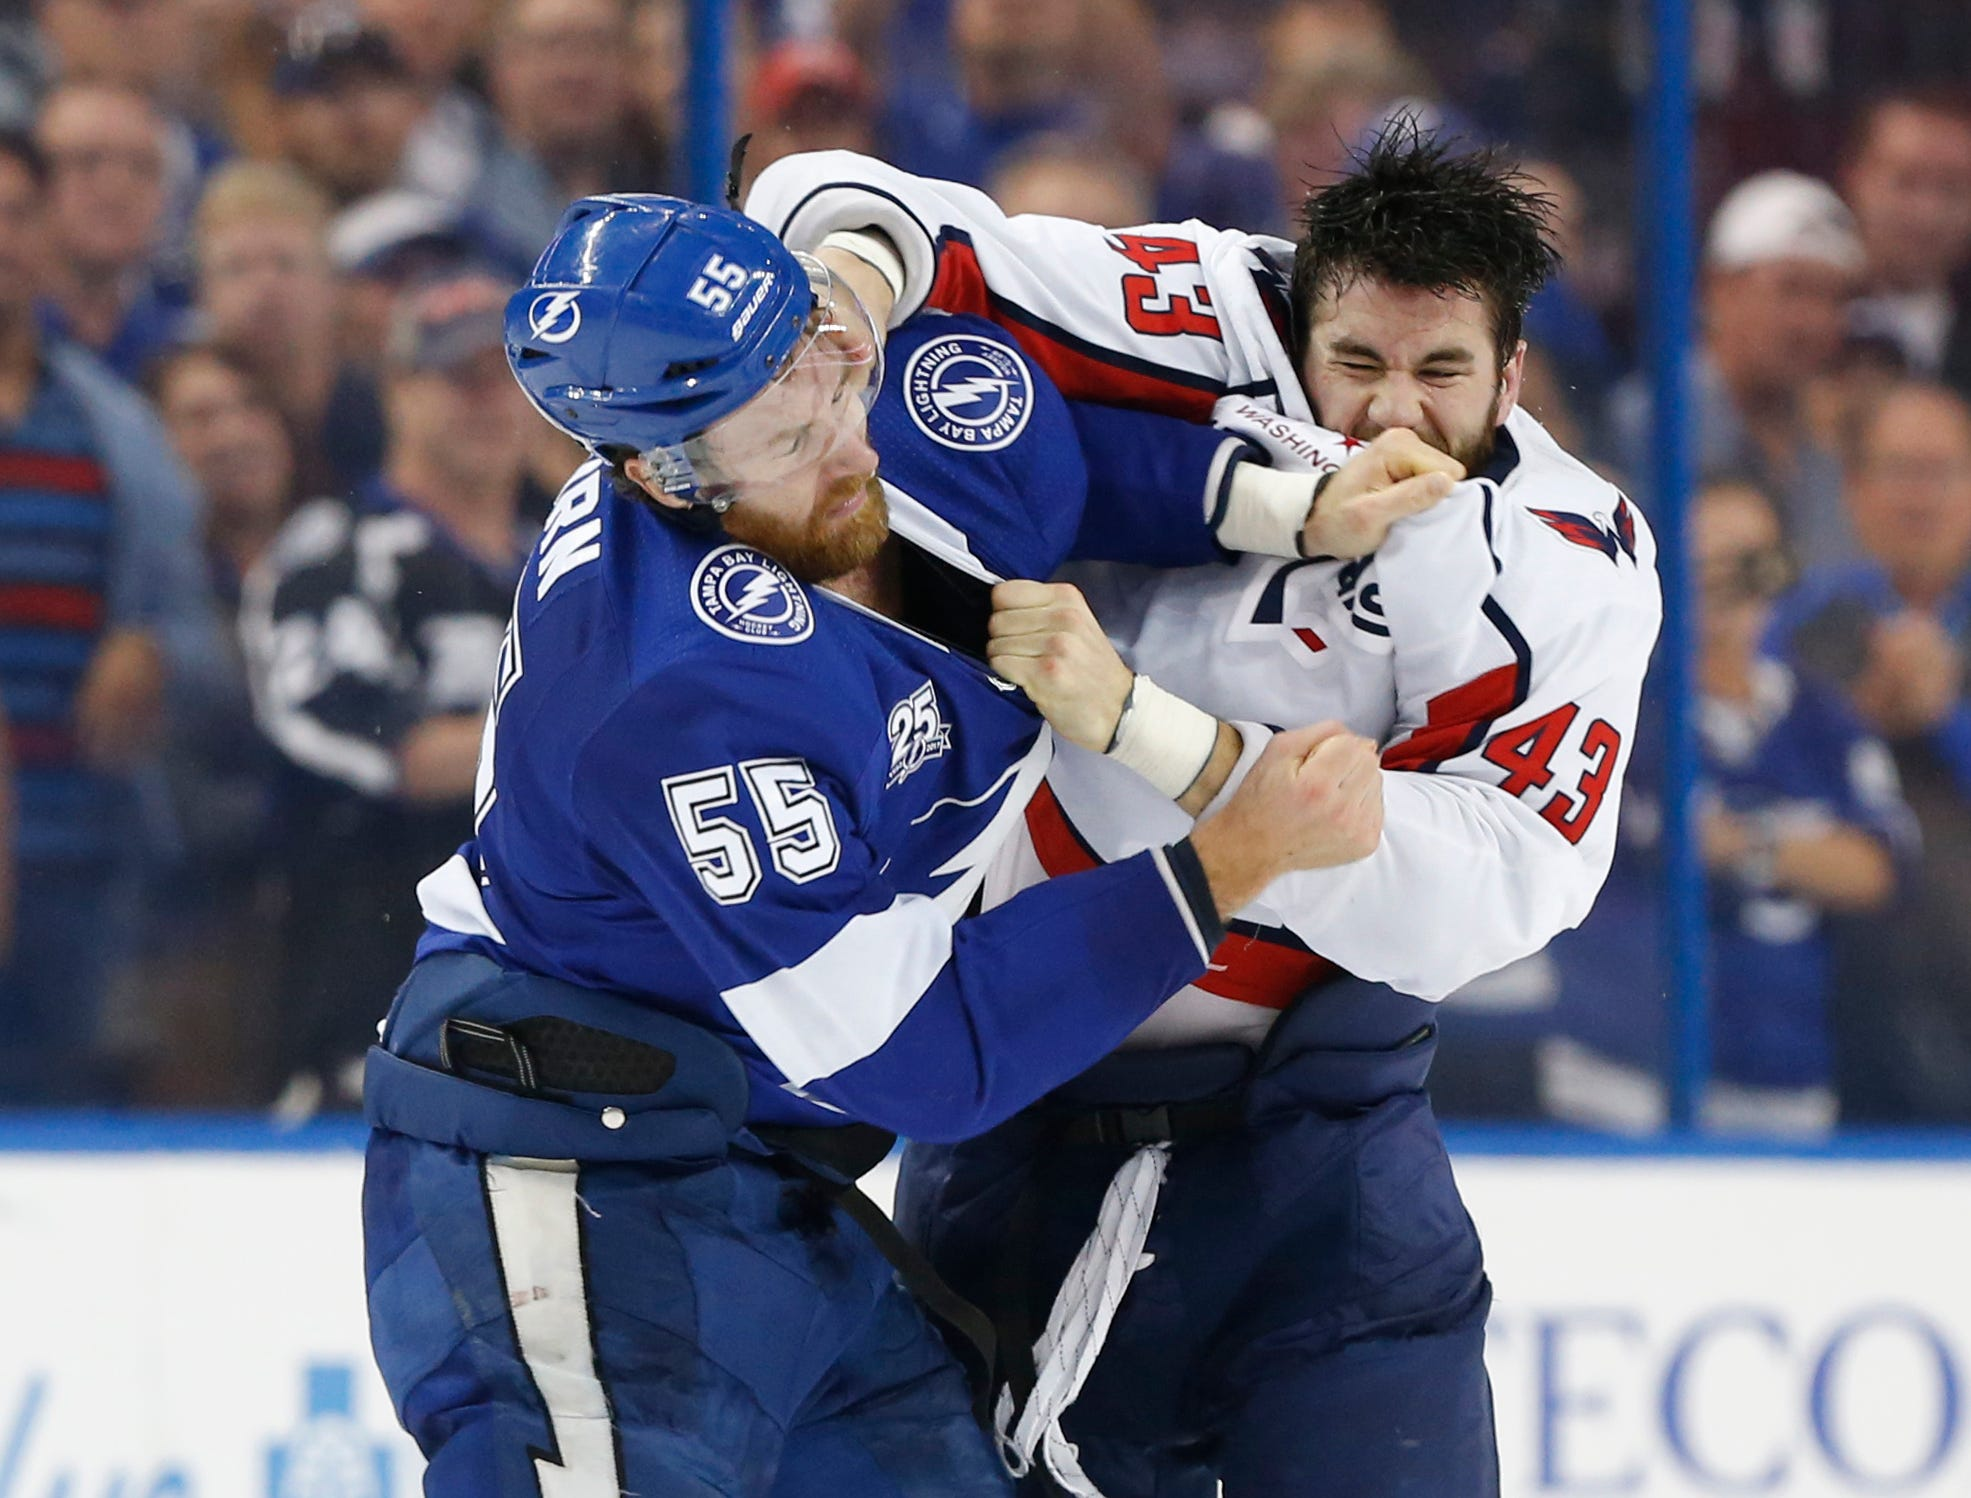 May 23: Washington Capitals right wing Tom Wilson (43) fights Tampa Bay Lightning defenseman Braydon Coburn in Game 7 of the Eastern Conference final.